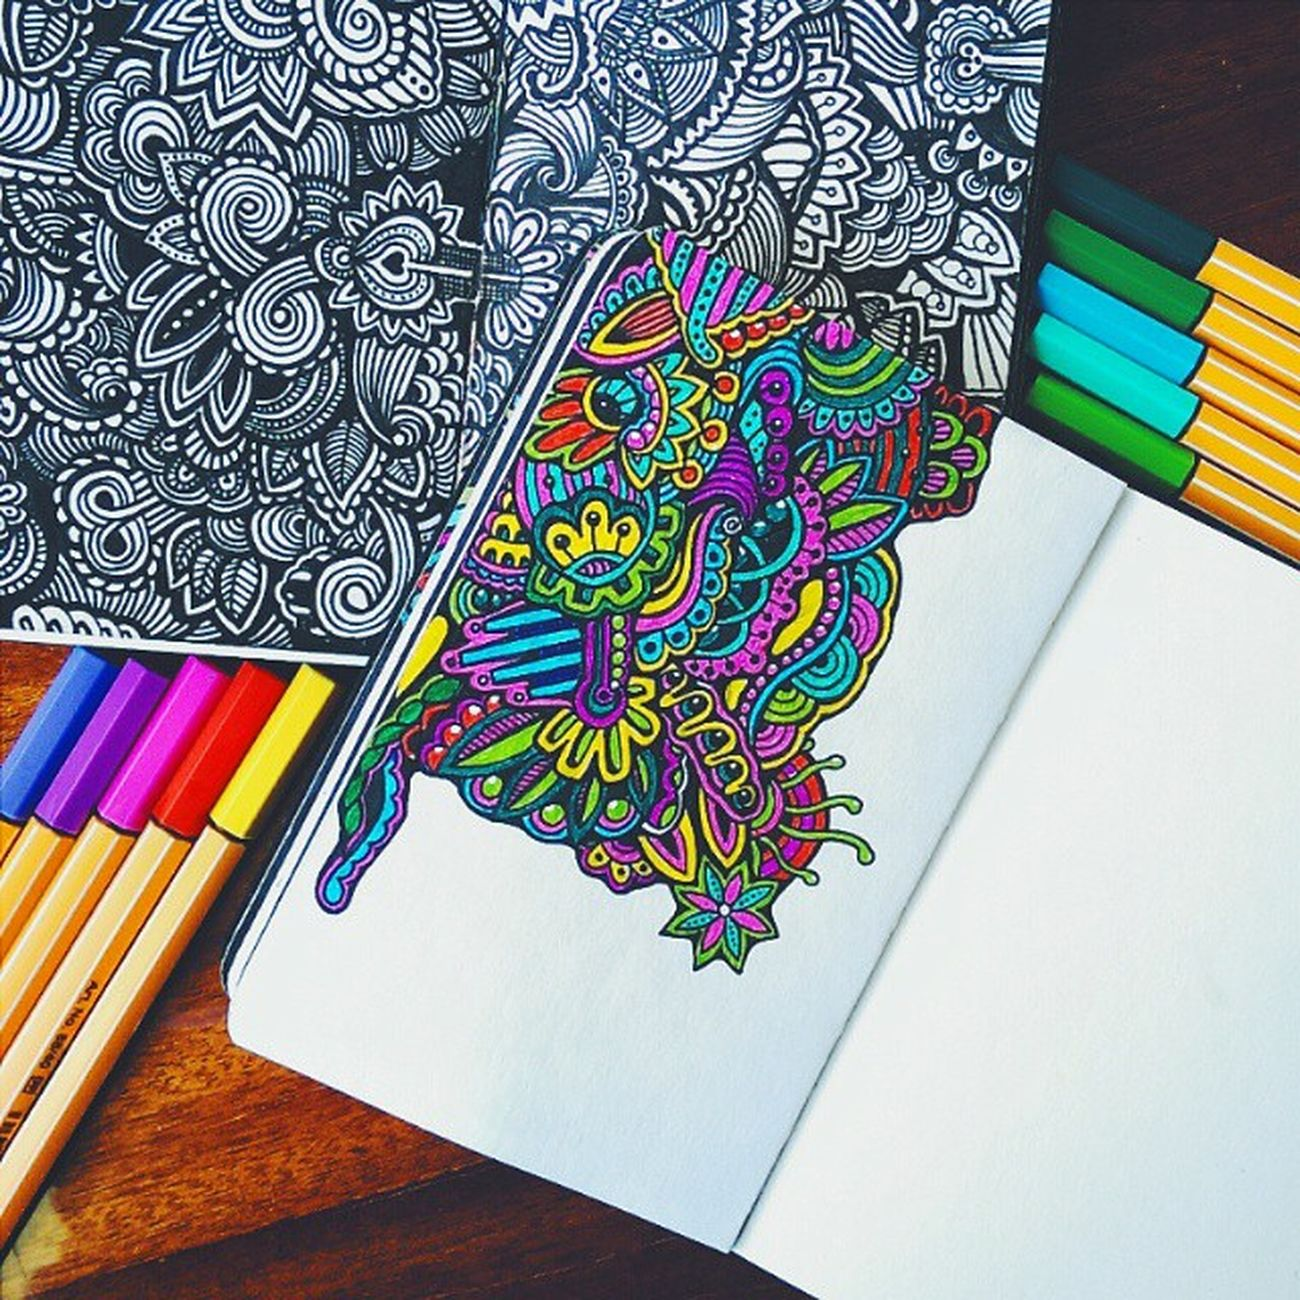 рисунок узоры линеры графика doodle doodling doodleart drawstagram drawing art linework liners painting paint скетчбук sketchbook artwork zentangle zendoodle topcreator artist художник авторскаяработа рисую рисование elenayoox ink wonwalls art_we_inspire art_public для @art_public